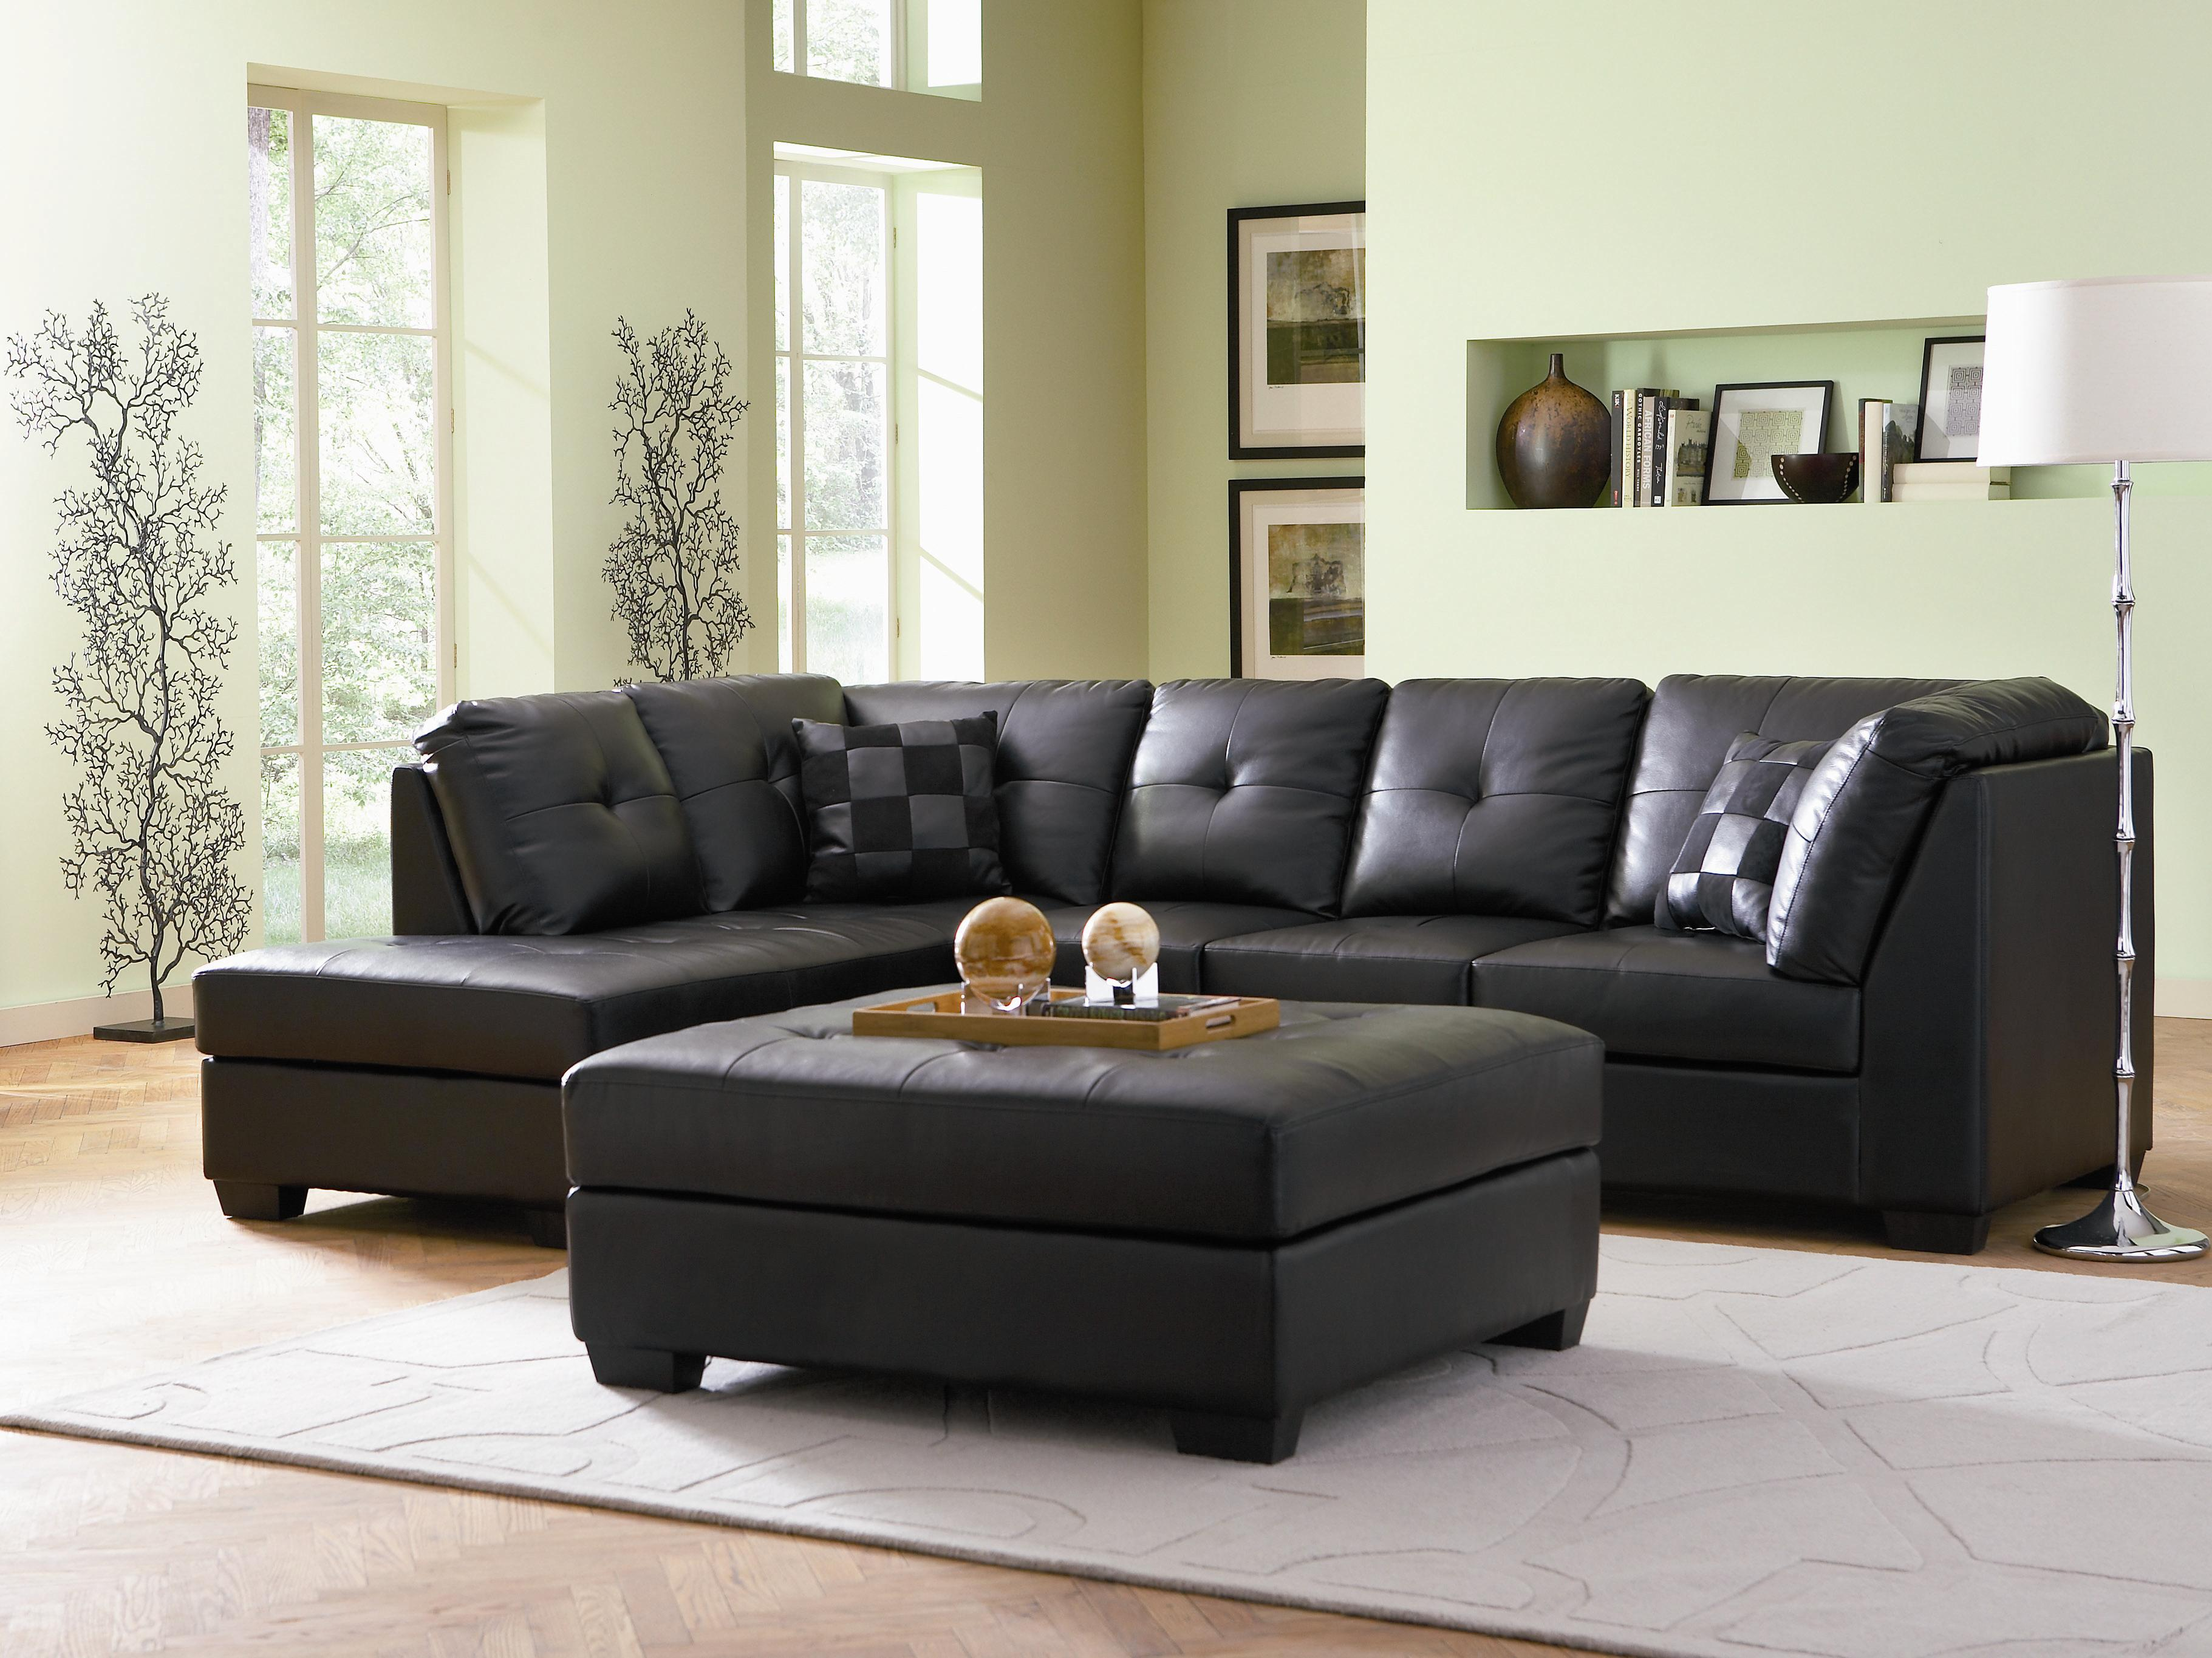 Coaster Darie Leather Sectional Sofa With Left Side Chaise Rife 39 S Home Furniture Sofa Sectional